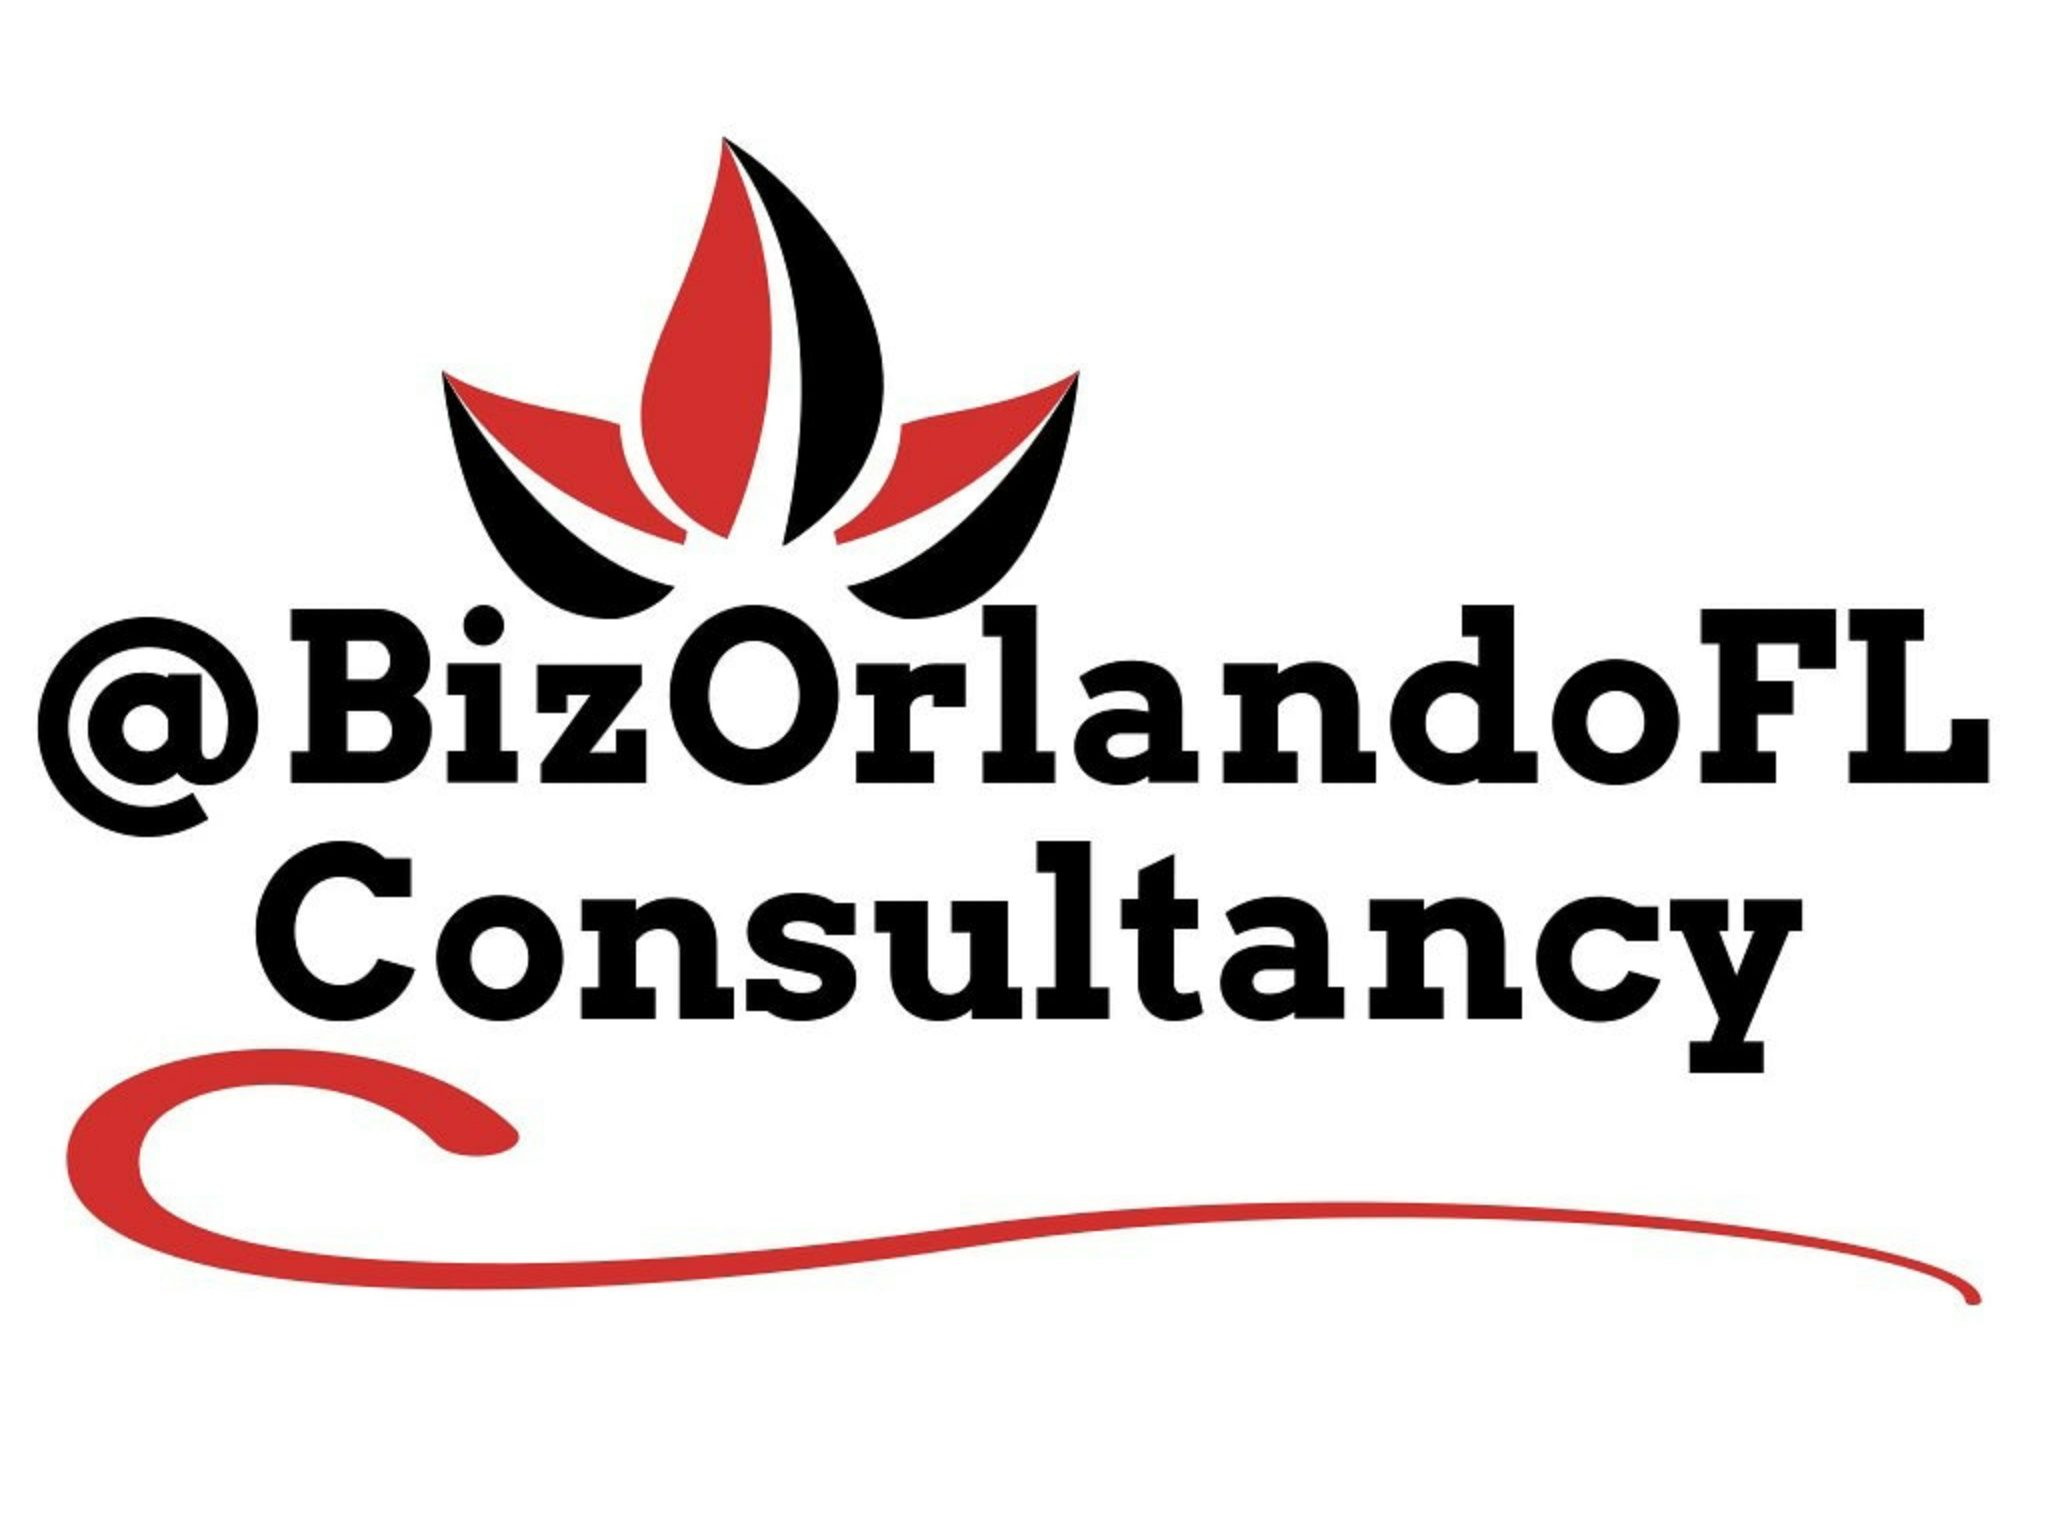 @BizOrlandoFL Consultancy | Where Brand New Ideas Are Grown | BizOrlandoFL.com